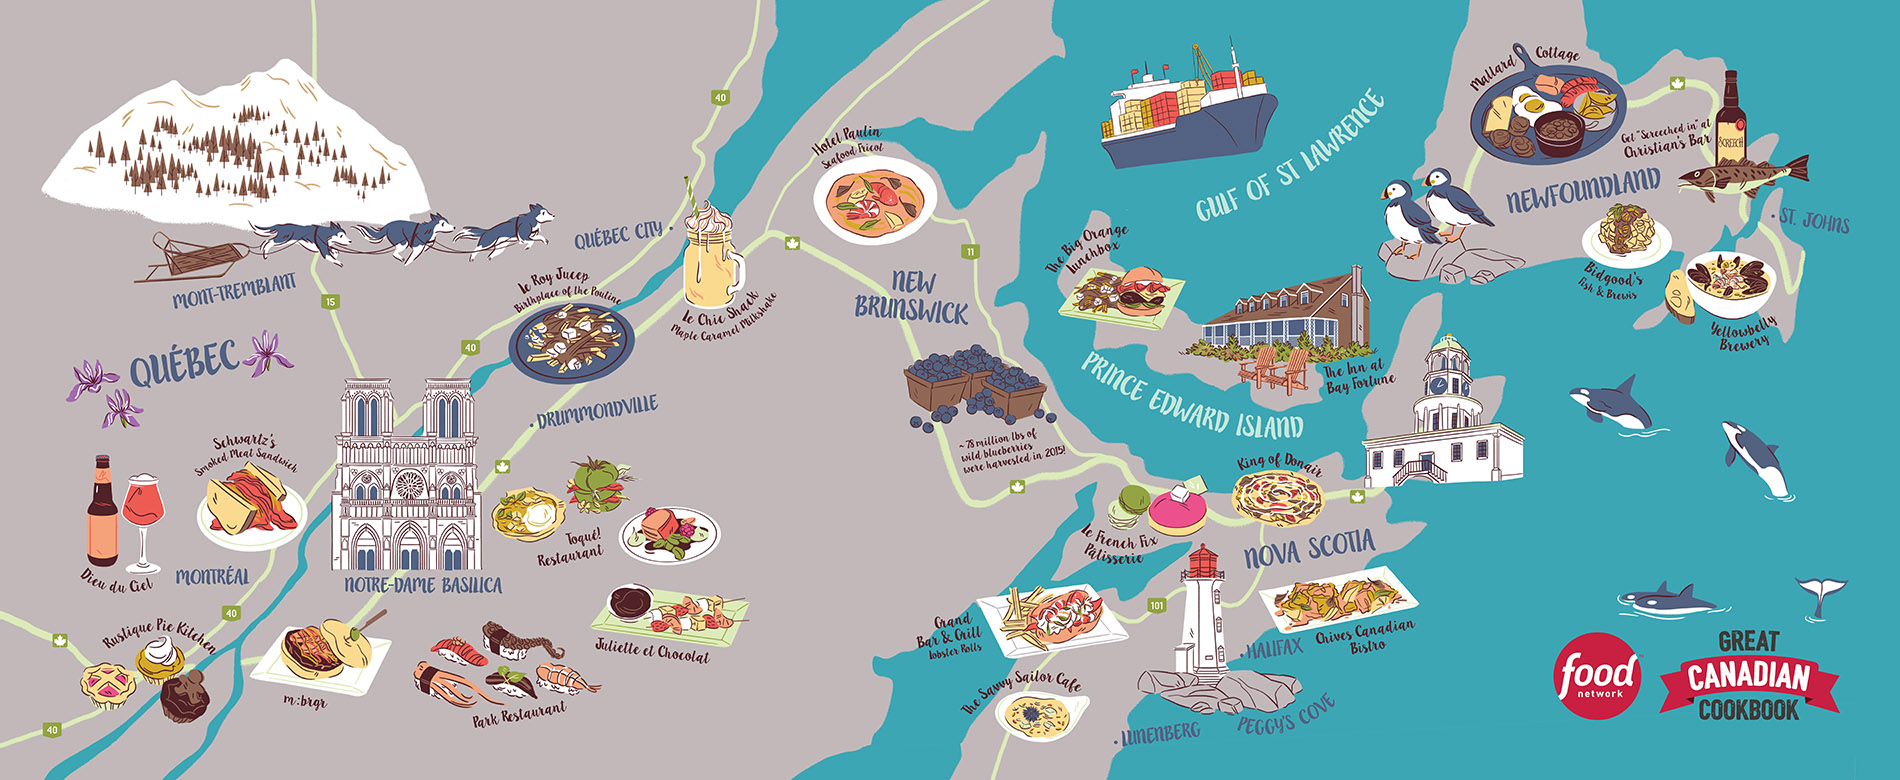 Great Canadian Cookbook - Quebec & The Maritimes